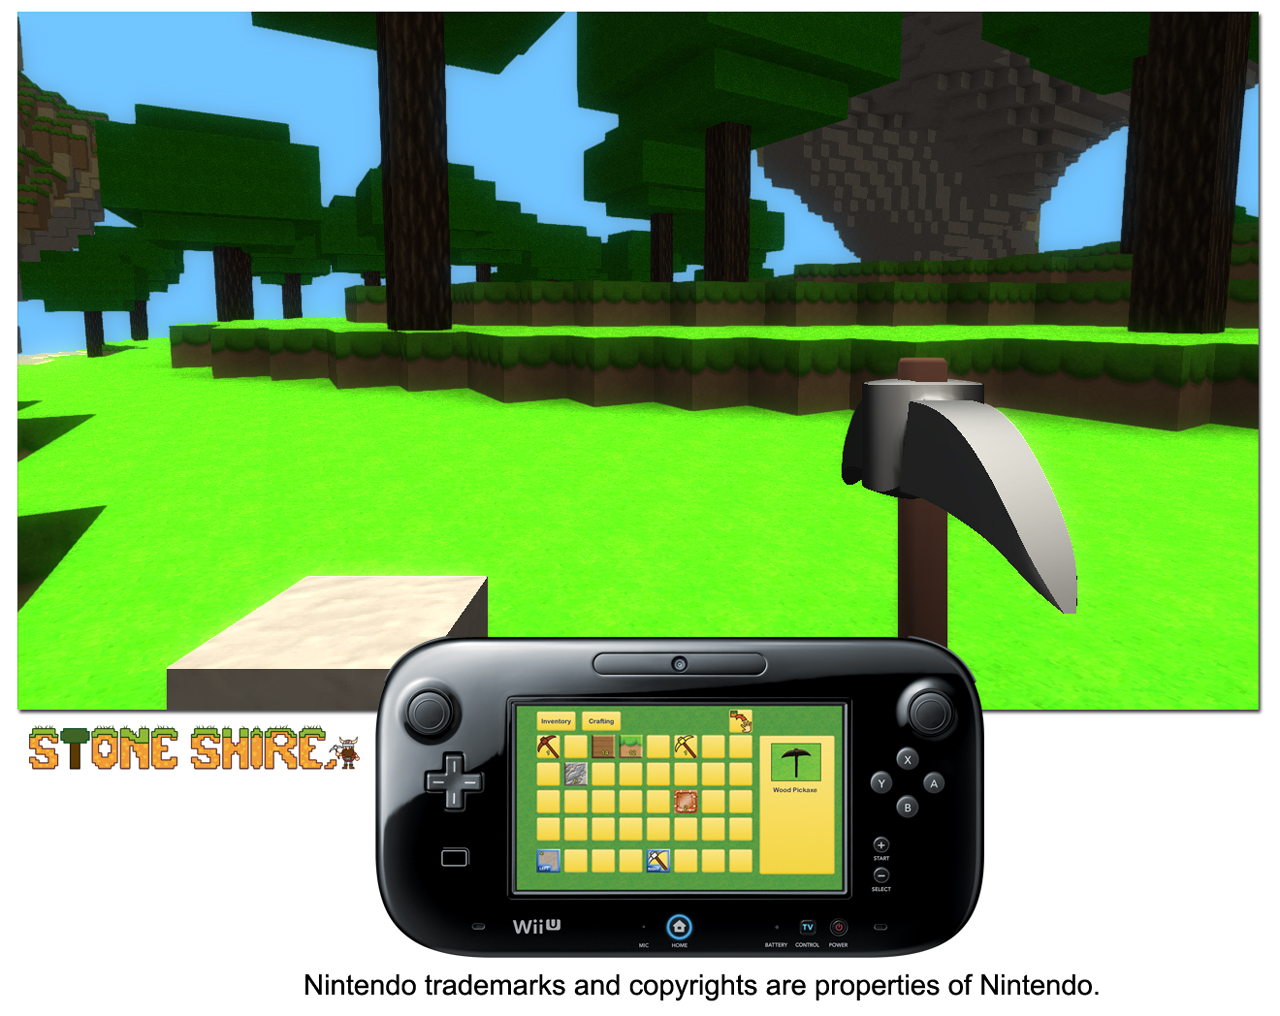 Stone Shire - Managing inventory with Wii U™ GamePad controller